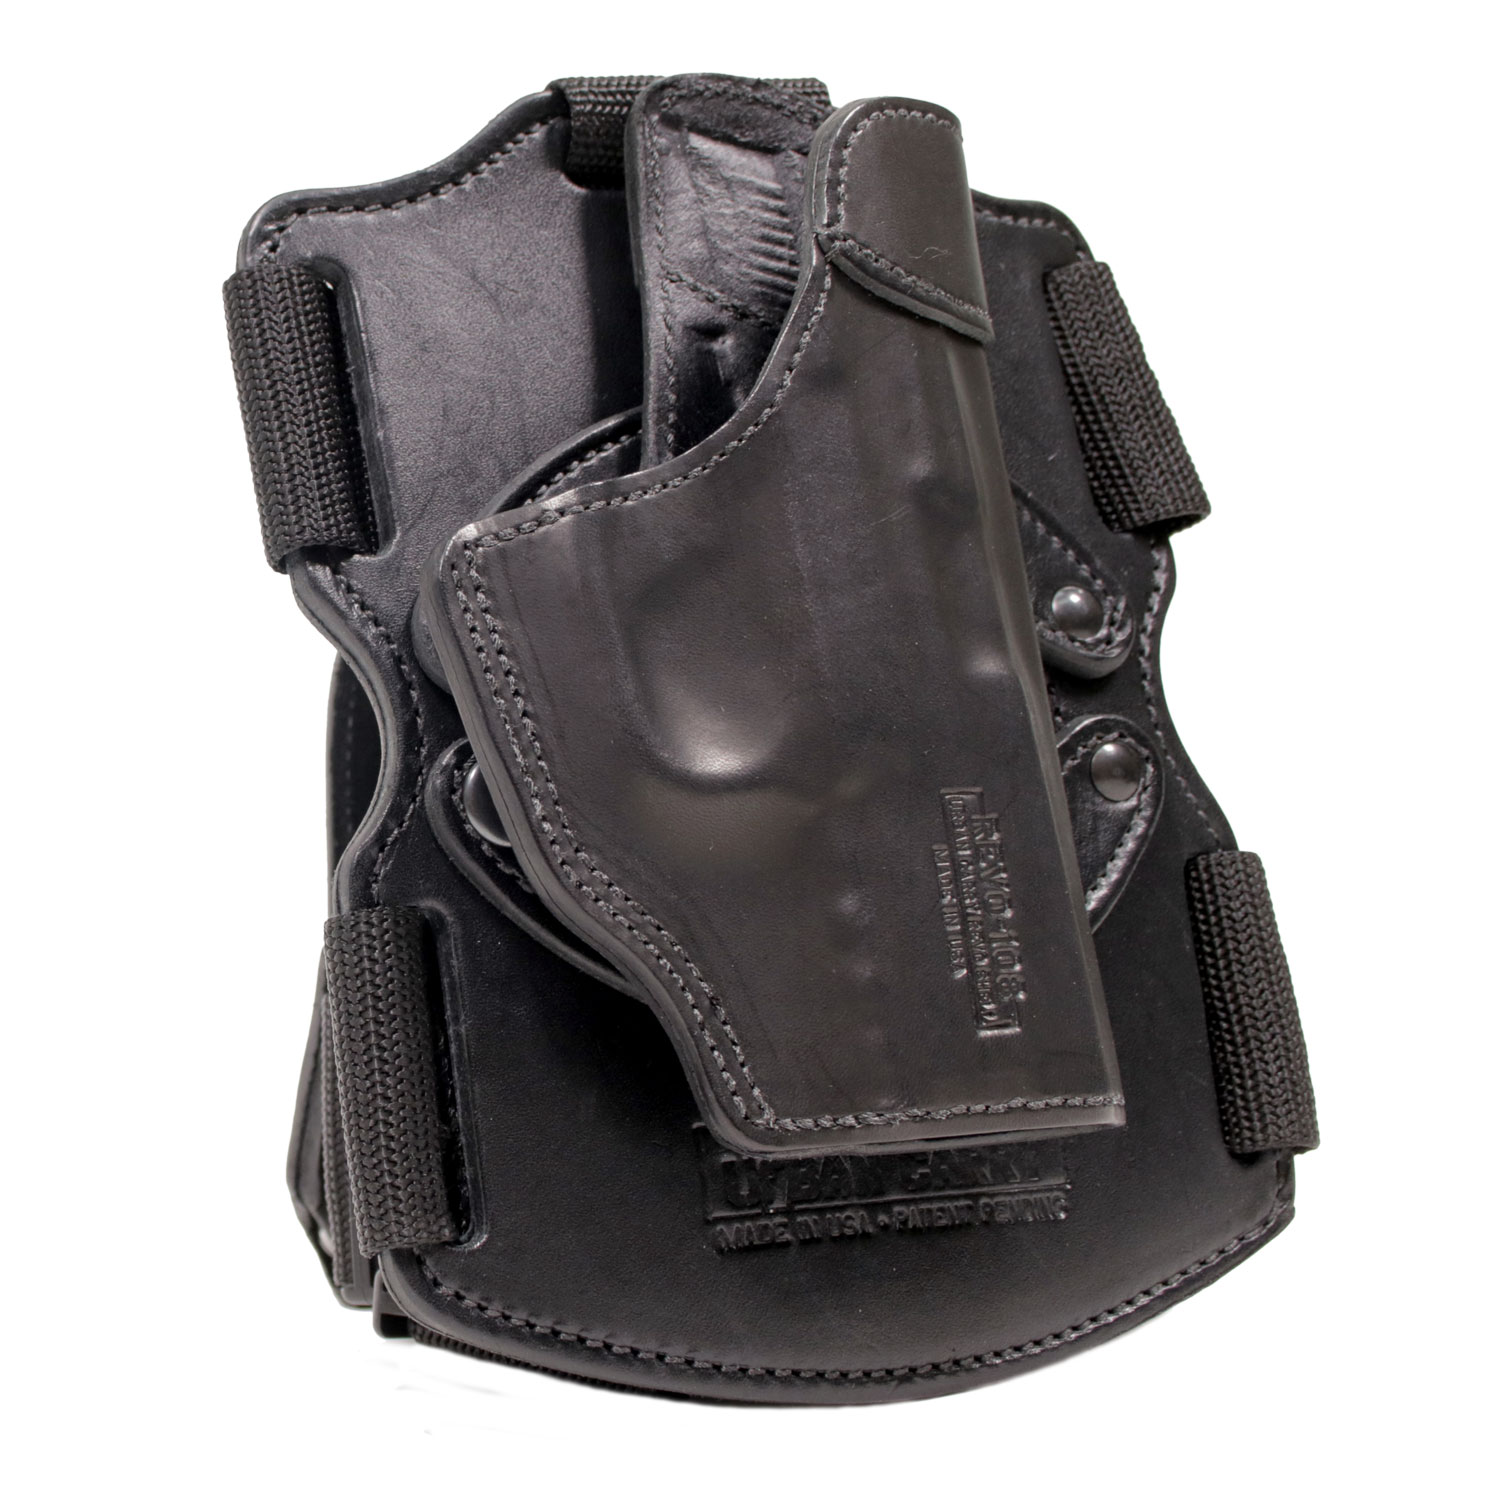 Revolver J-Frame 3in  Barrel Drop Leg Thigh Holster, Modular REVO